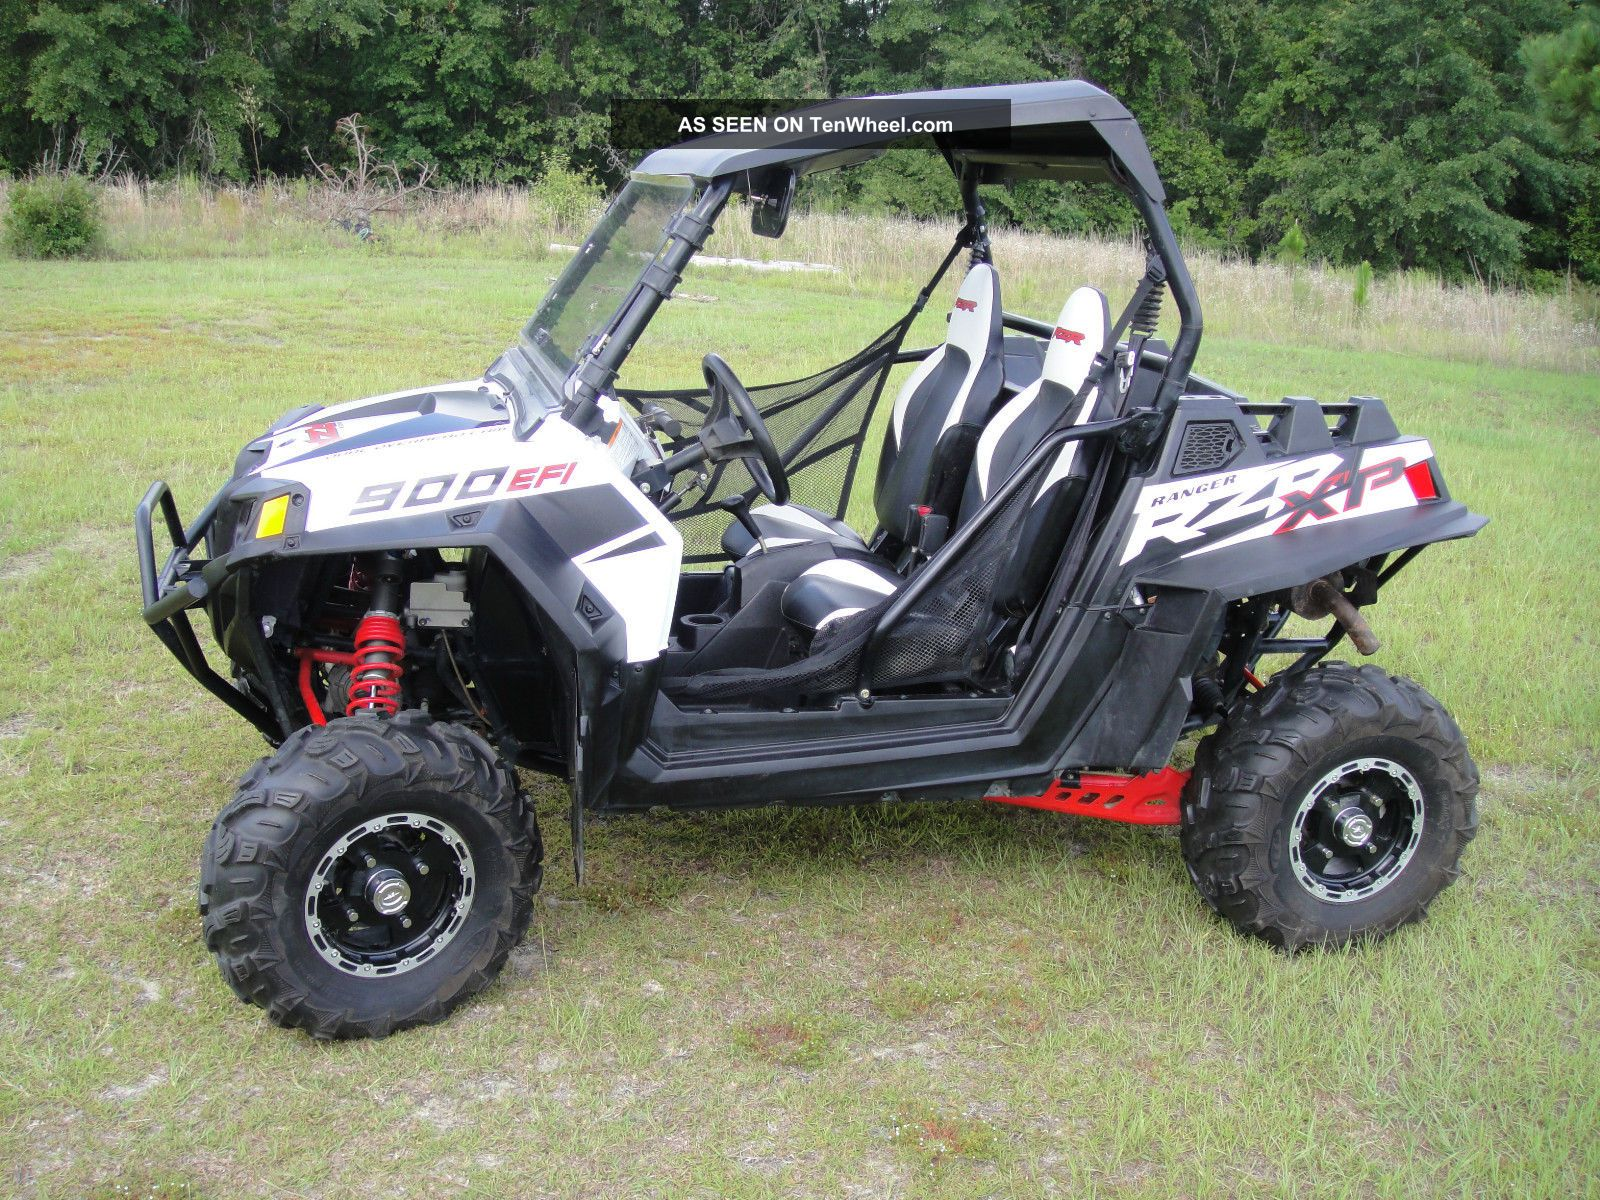 2011 Polaris Rzr UTVs photo